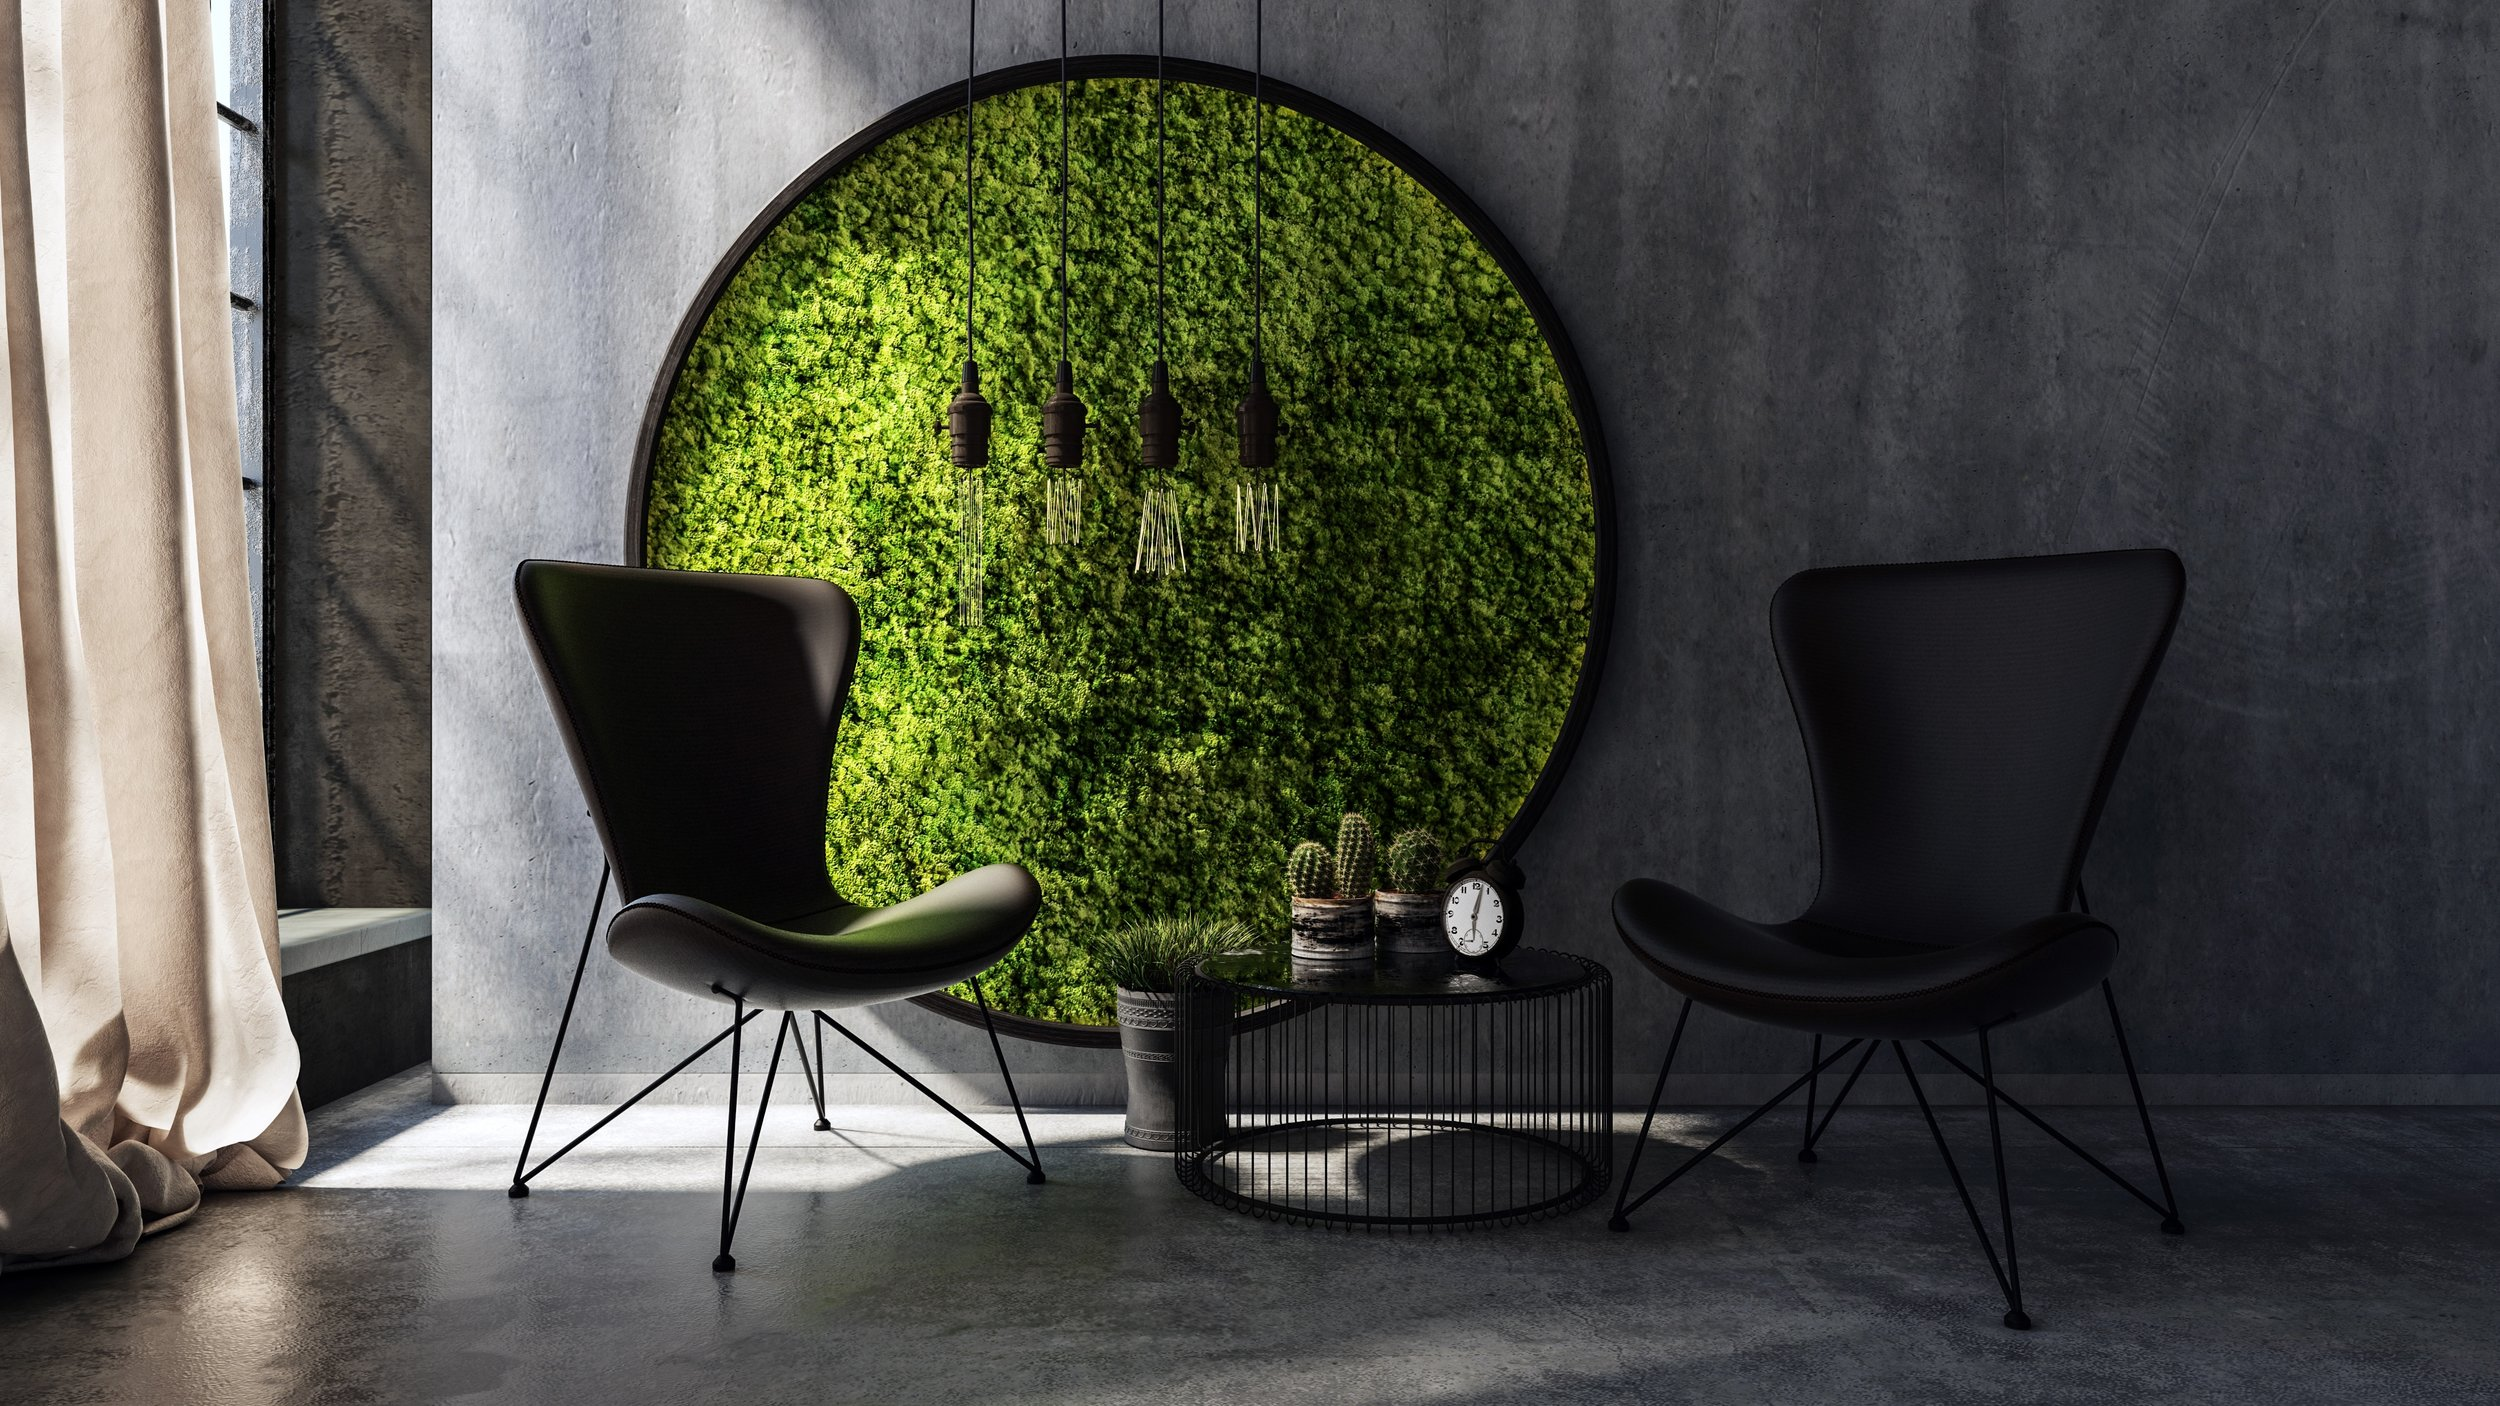 "2. Living Walls - We find the more Greenery we have surrounding ourselves the more at peace we seem to feel. why not give soul to what was once a ""lifeless"" wall in your home? we promise you wont tire looking at it.No matter what colour palette you may choose for your new design, natural greenery always finds a way to immerse itself into it's backdrop."